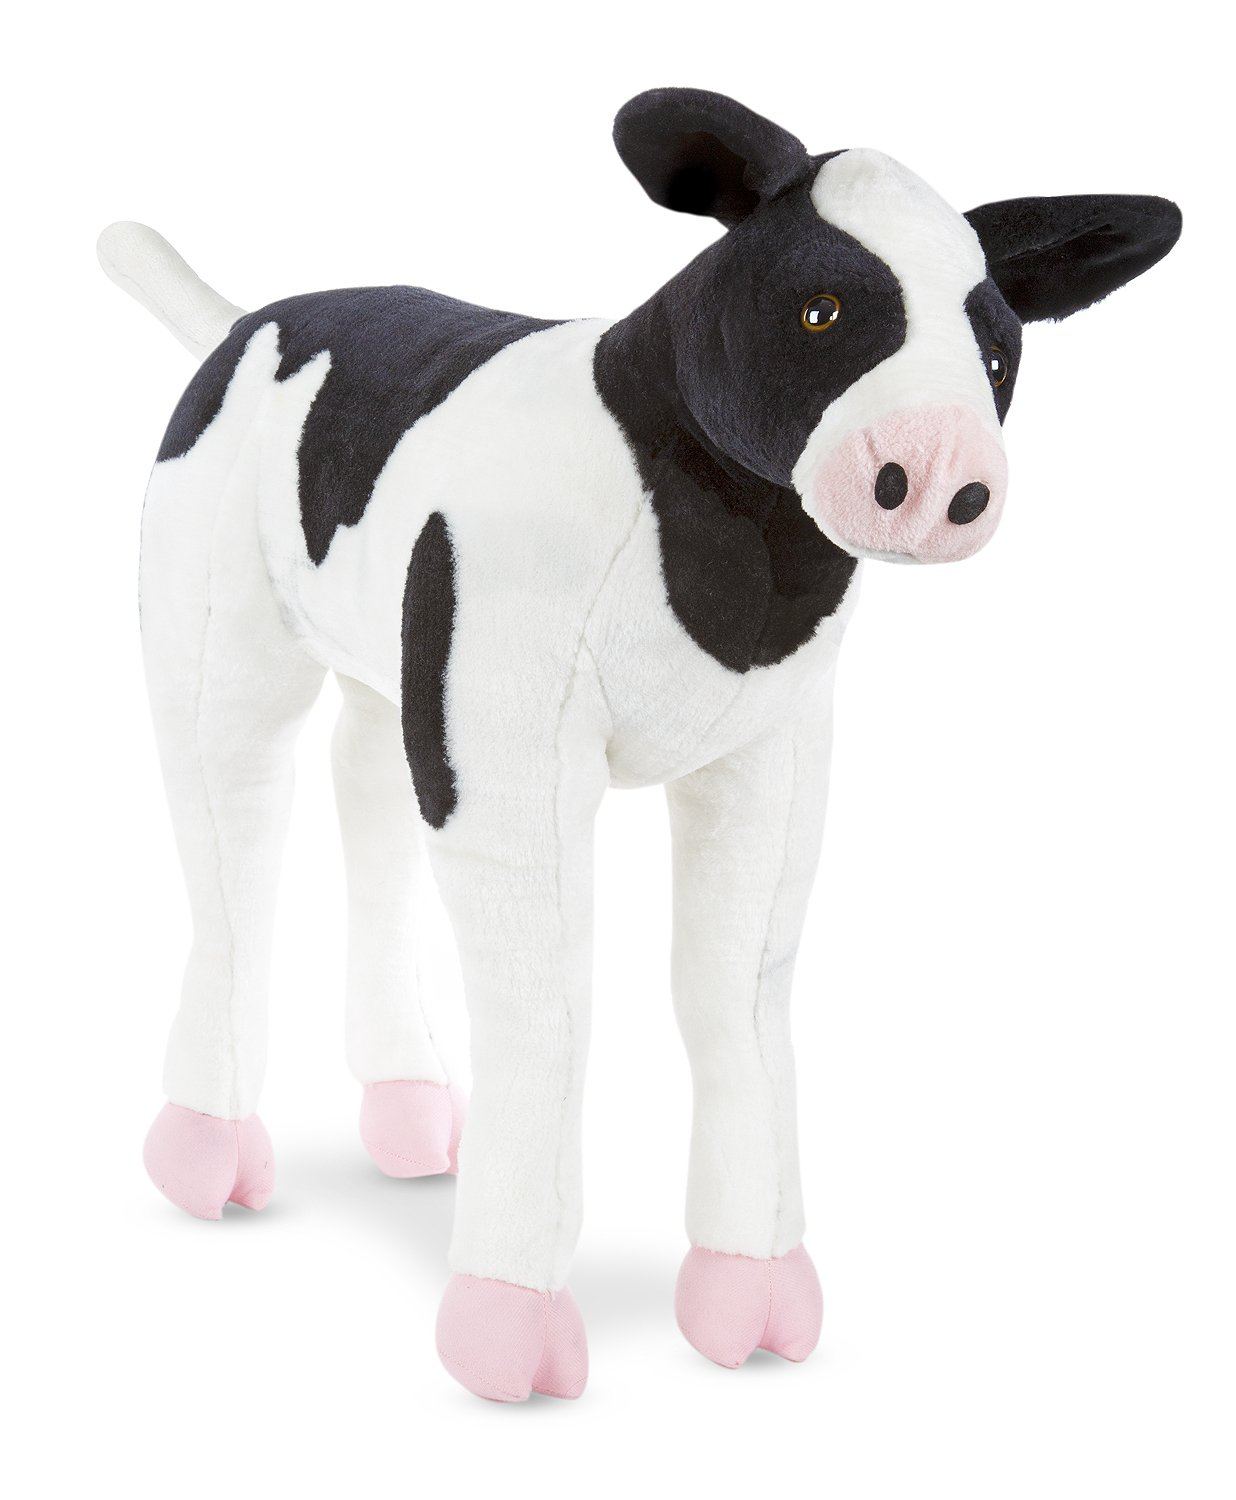 Melissa & Doug Giant Calf - Lifelike  Stuffed Animal Baby Cow (2 feet tall)